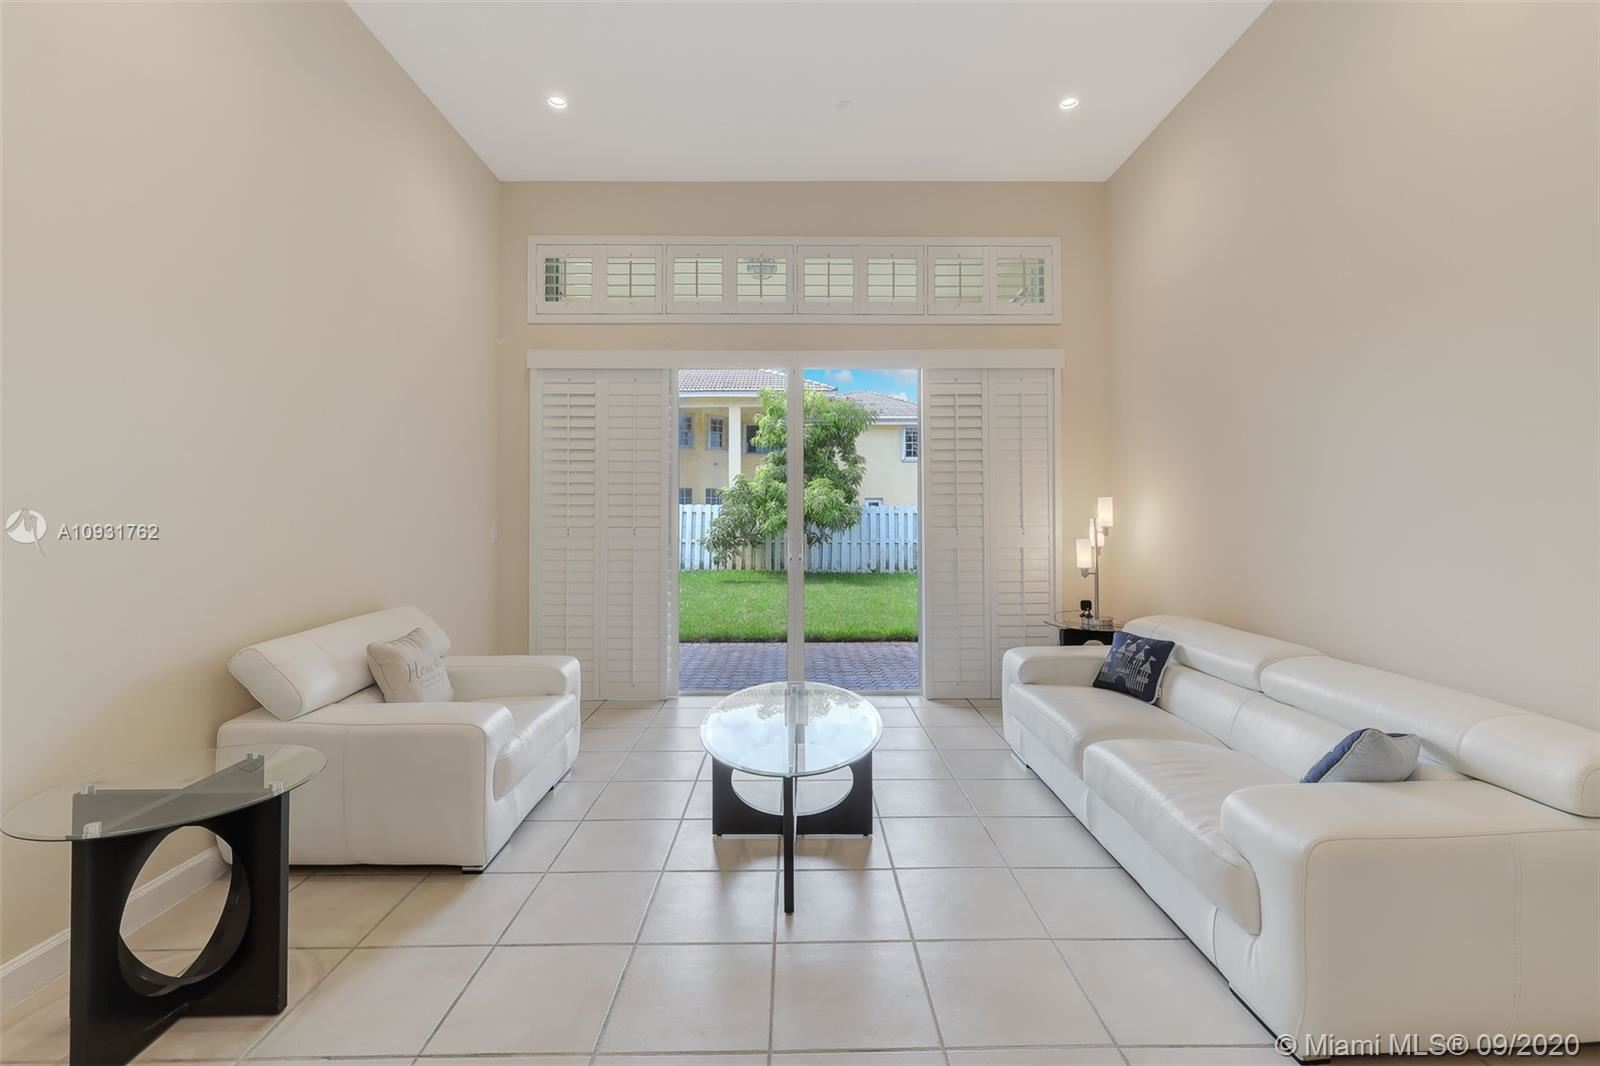 Photo of 1228 NW 165th Ave, Pembroke Pines, FL 33028 (MLS # A10931762)